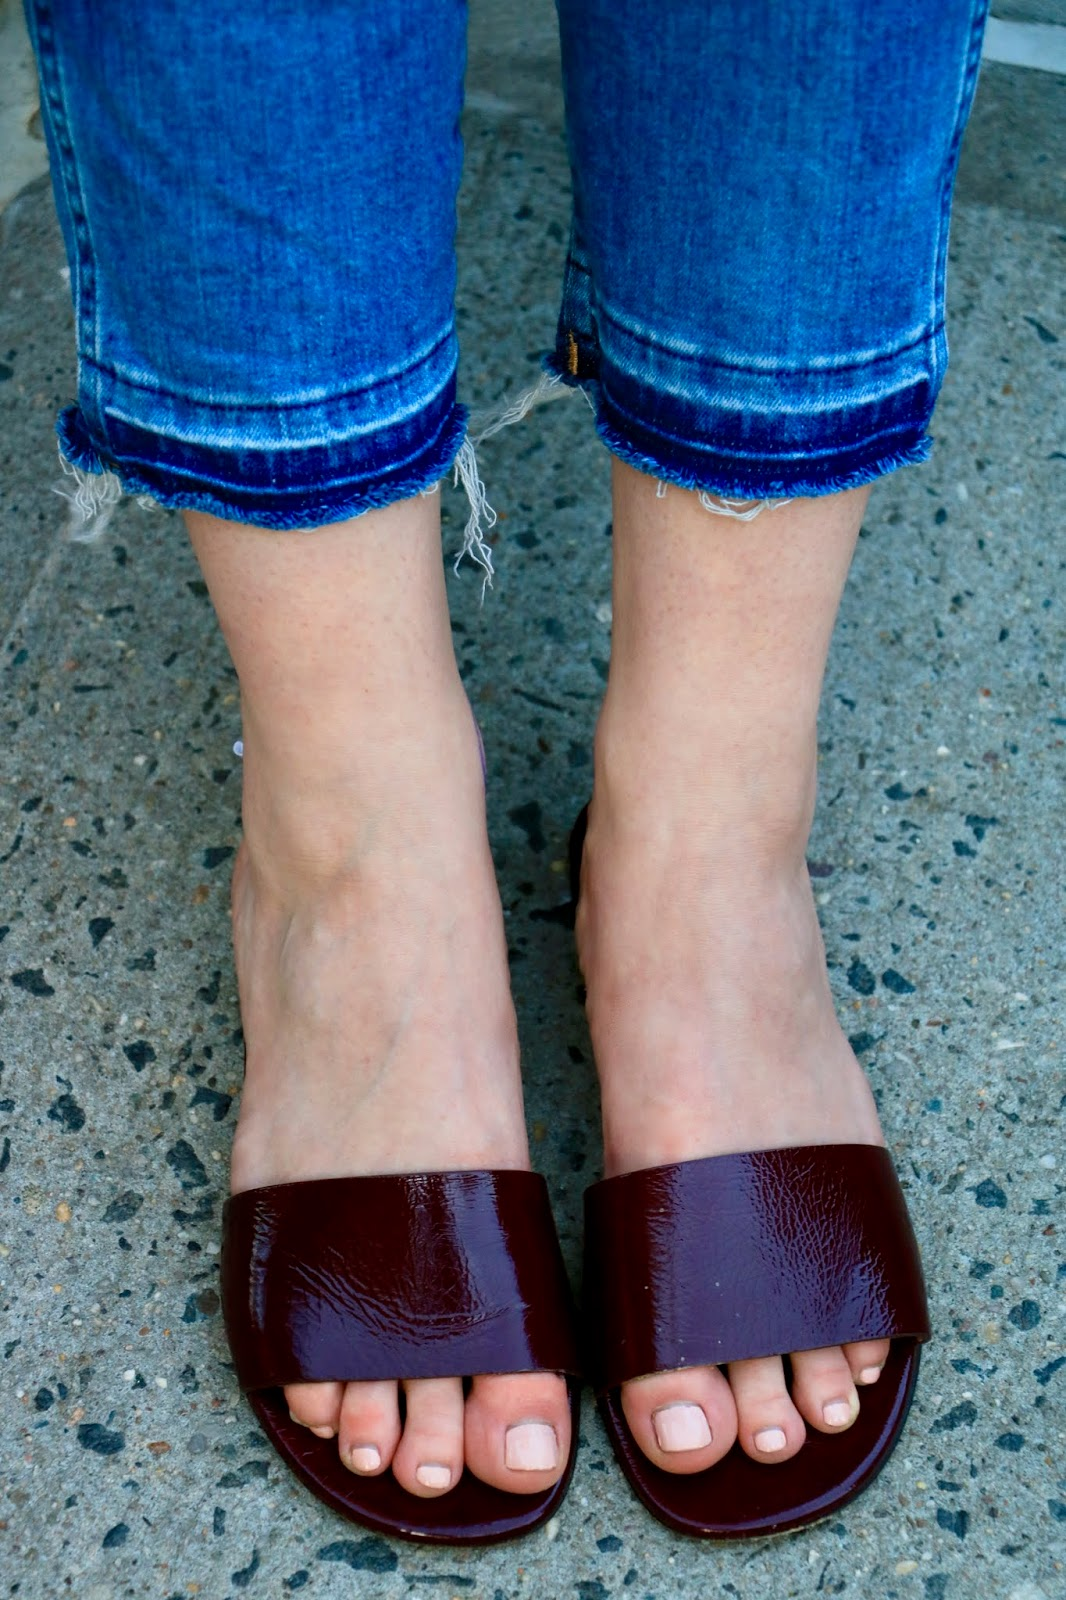 Nyc fashion blogger Kathleen Harper wearing leather slides by Theory.